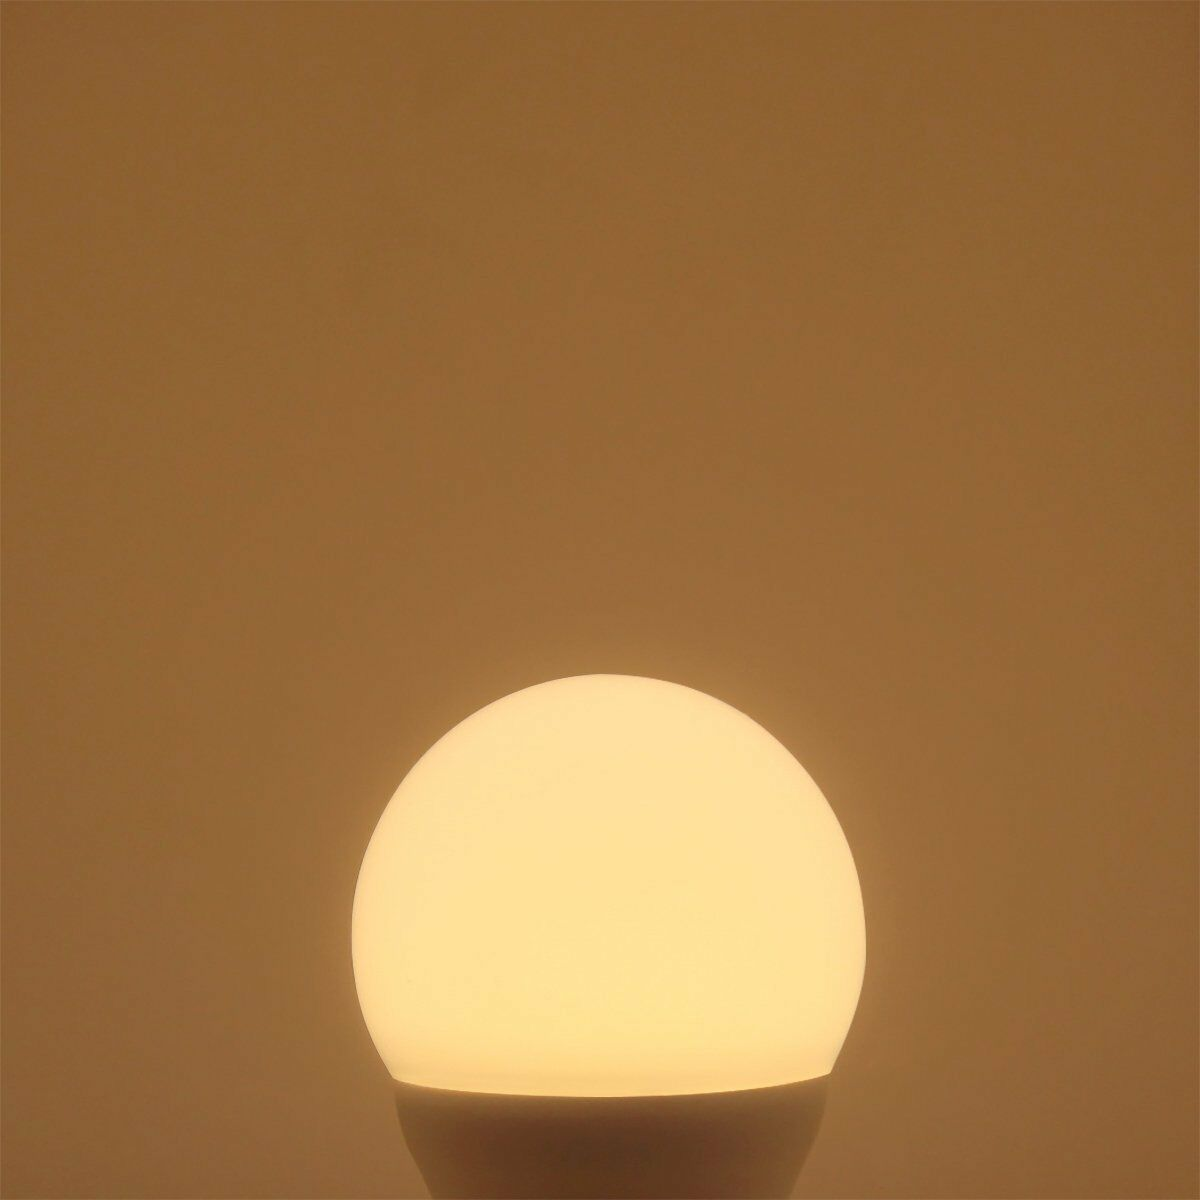 Brightest Incandescent Light Bulb